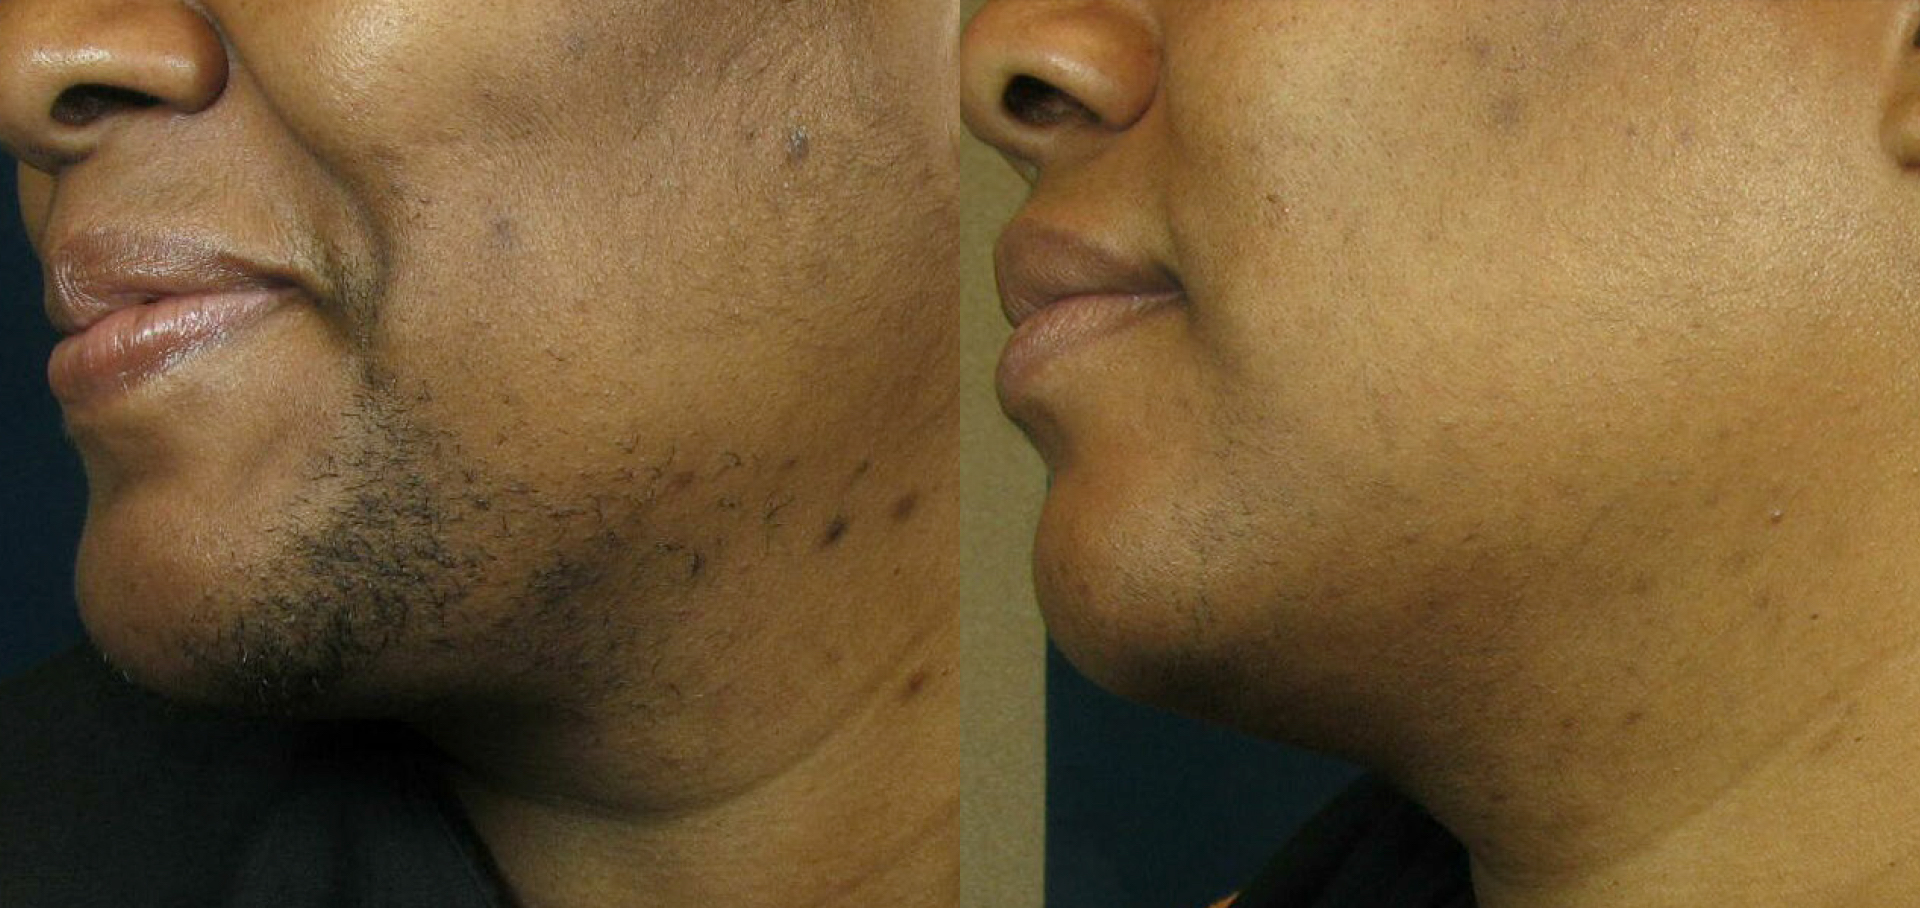 Photos showing effective results of laser hair removal on chin of female patient.